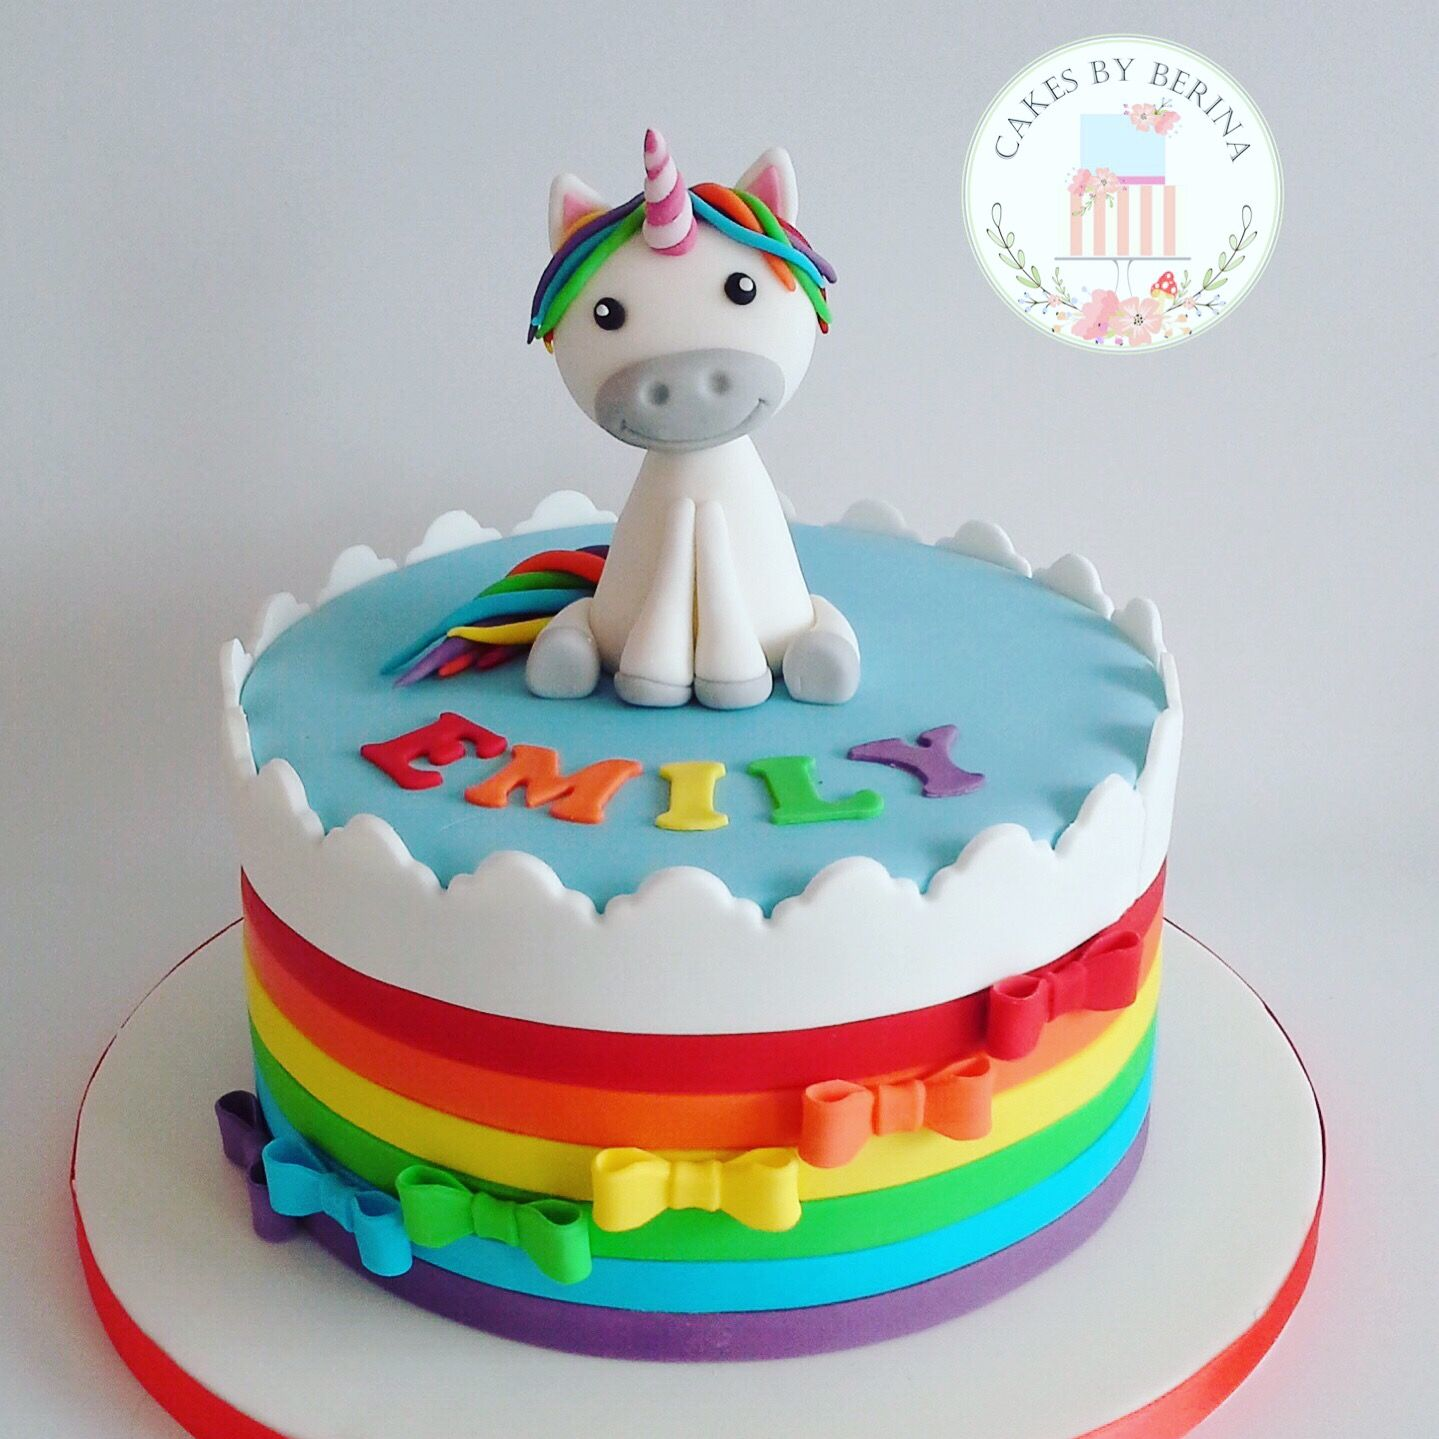 Bright rainbow cake with cute unicorn cake topper Designed by